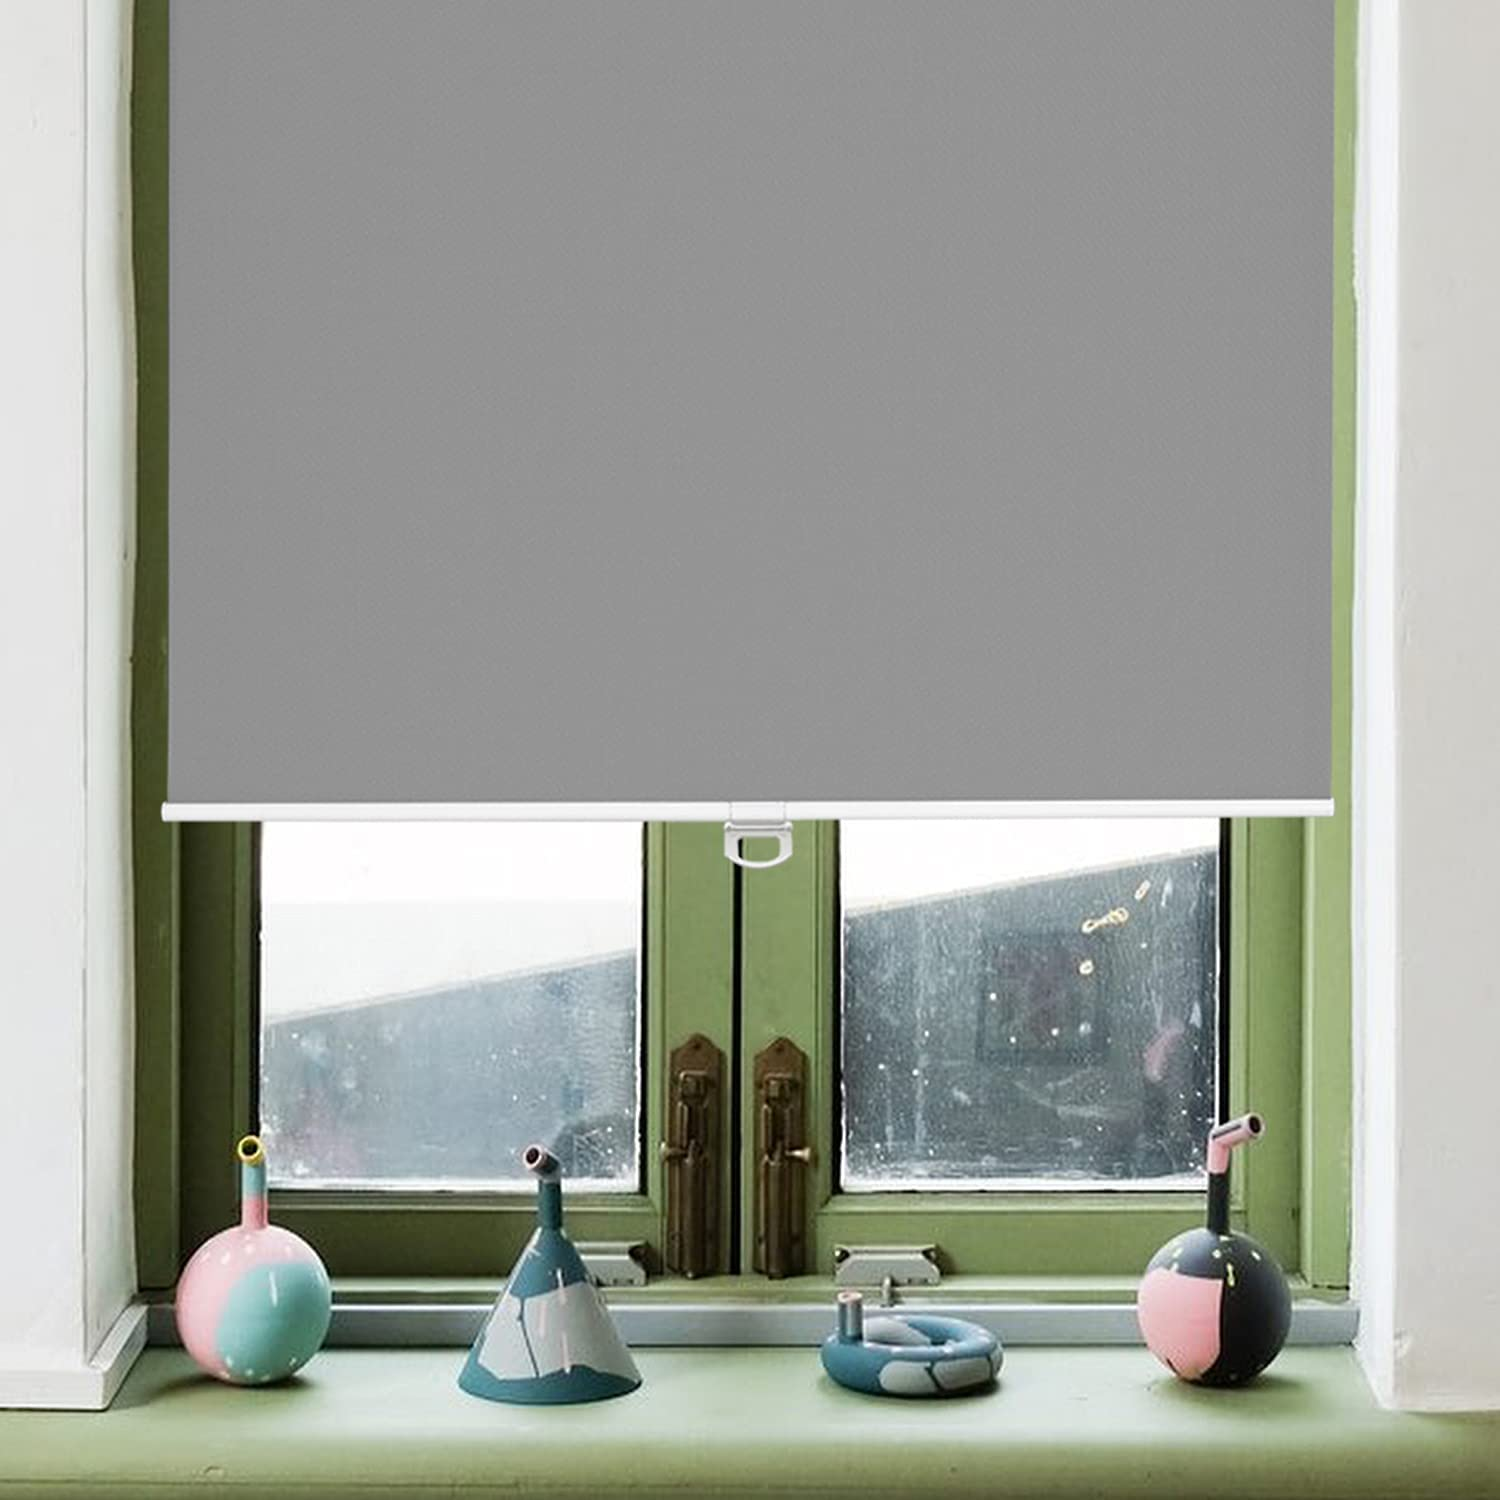 AOSKY Roller Deluxe Window Shades Blackout Blinds Windows for Popular products Cordless